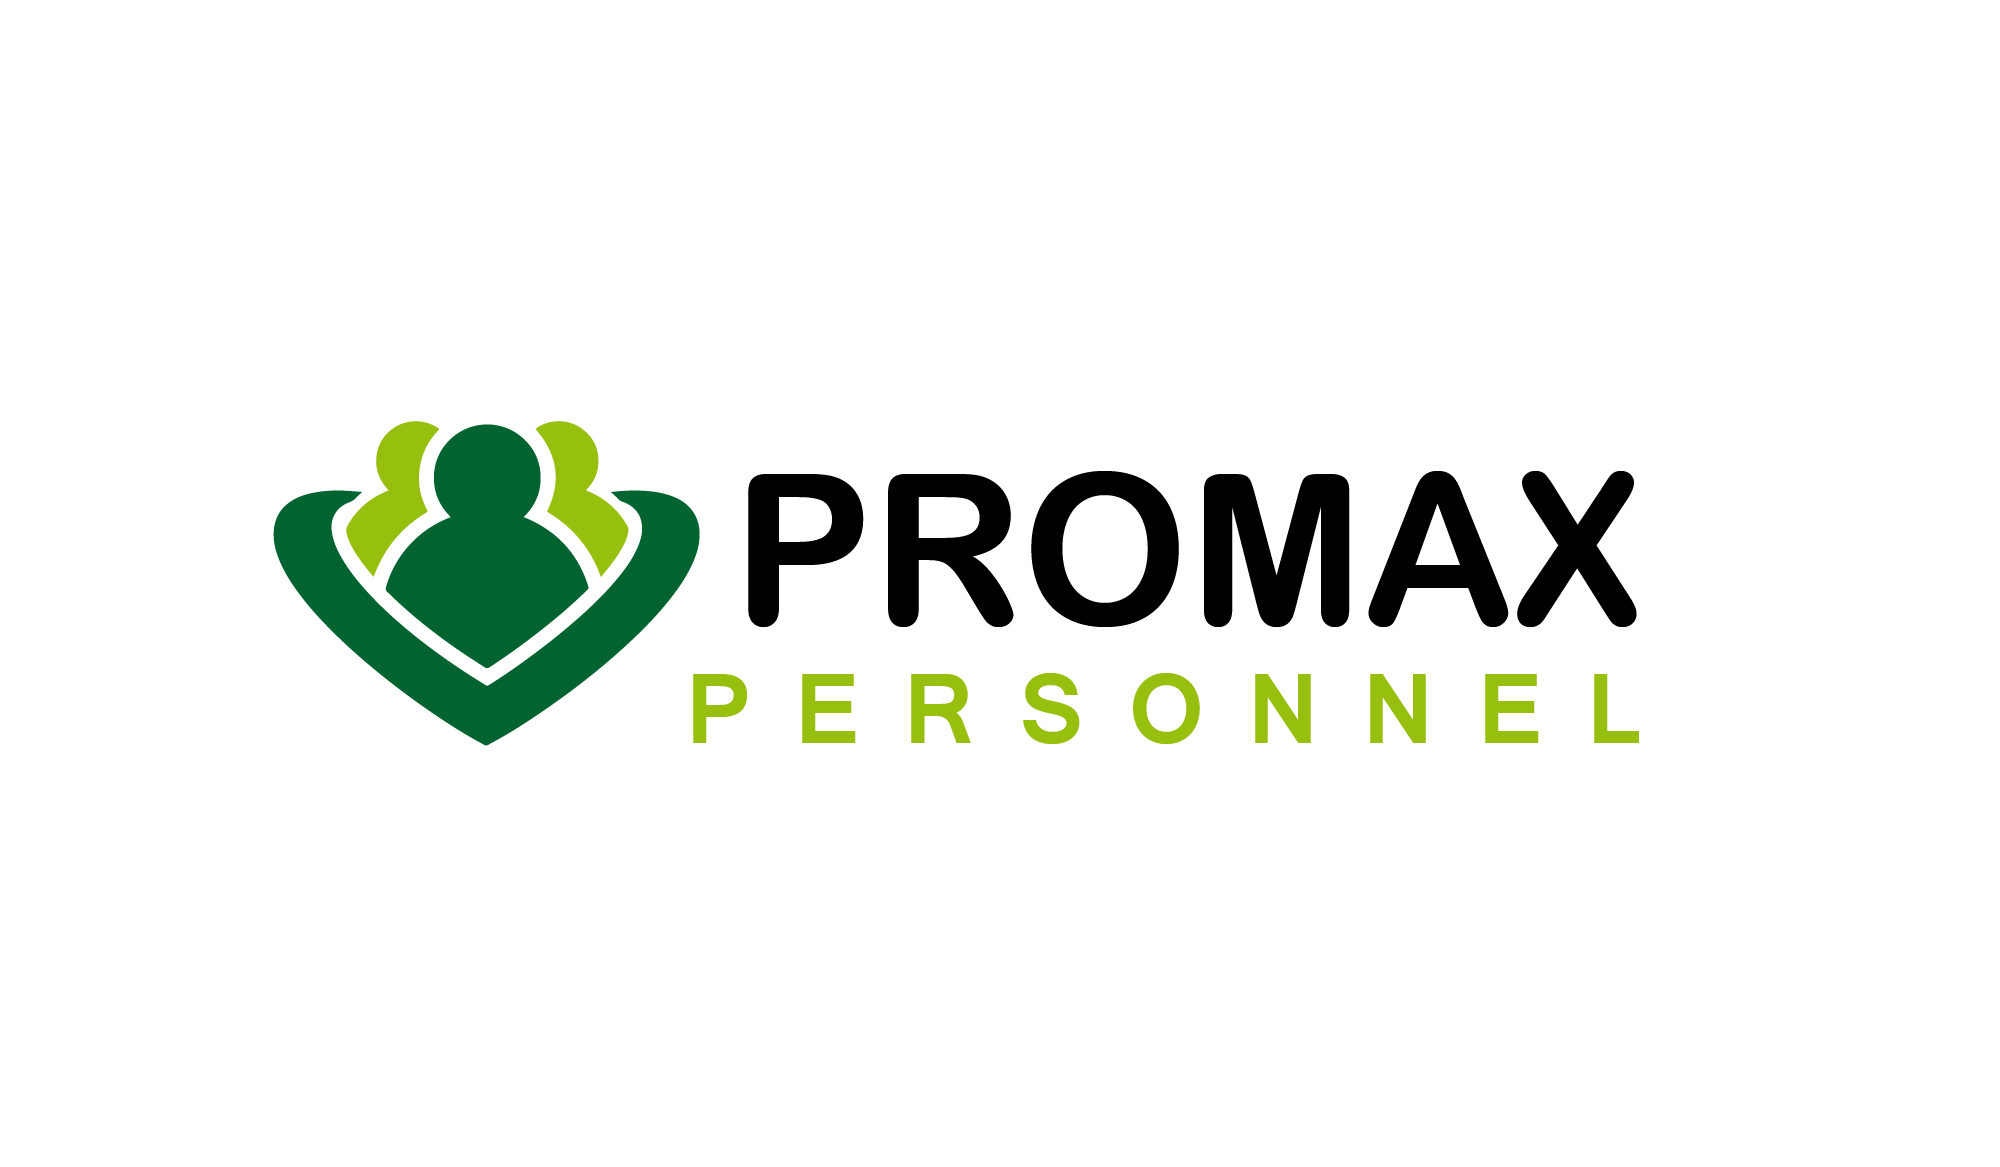 PROMAX PERSONNEL Launches Customized Recruitment Solutions for Employers and Job Seekers